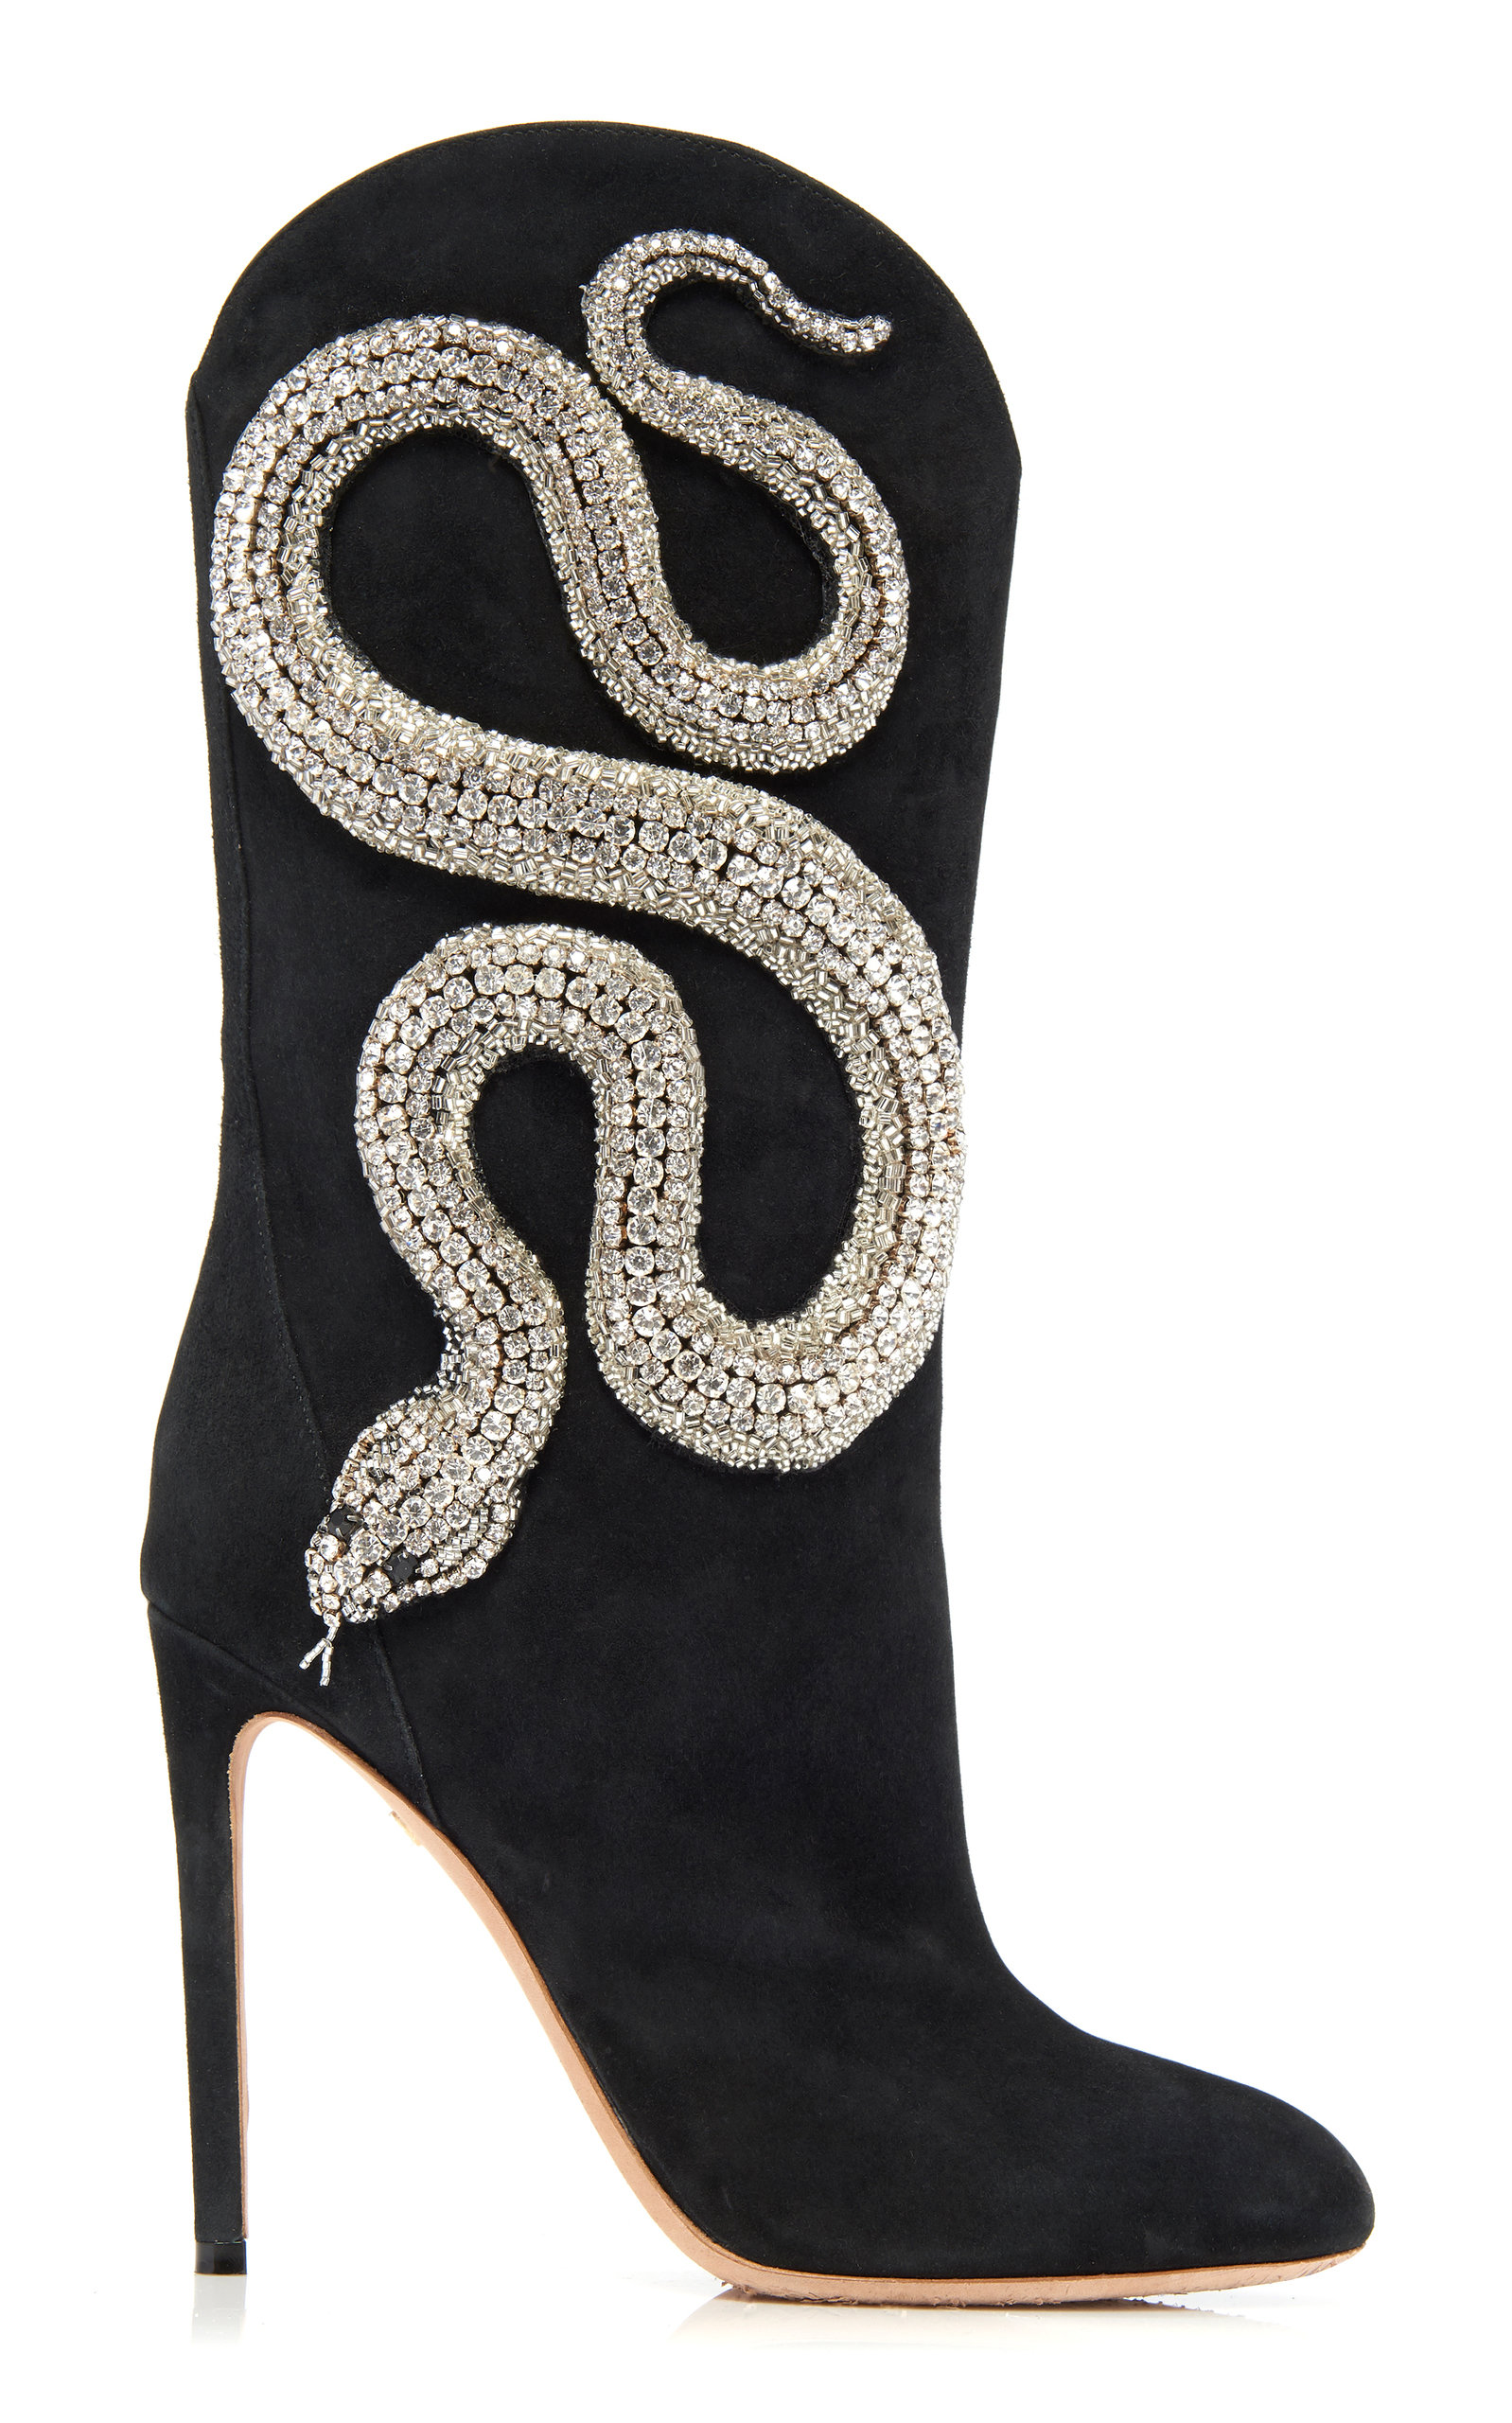 outlet store 3d649 c2407 Crystal Snake Boots